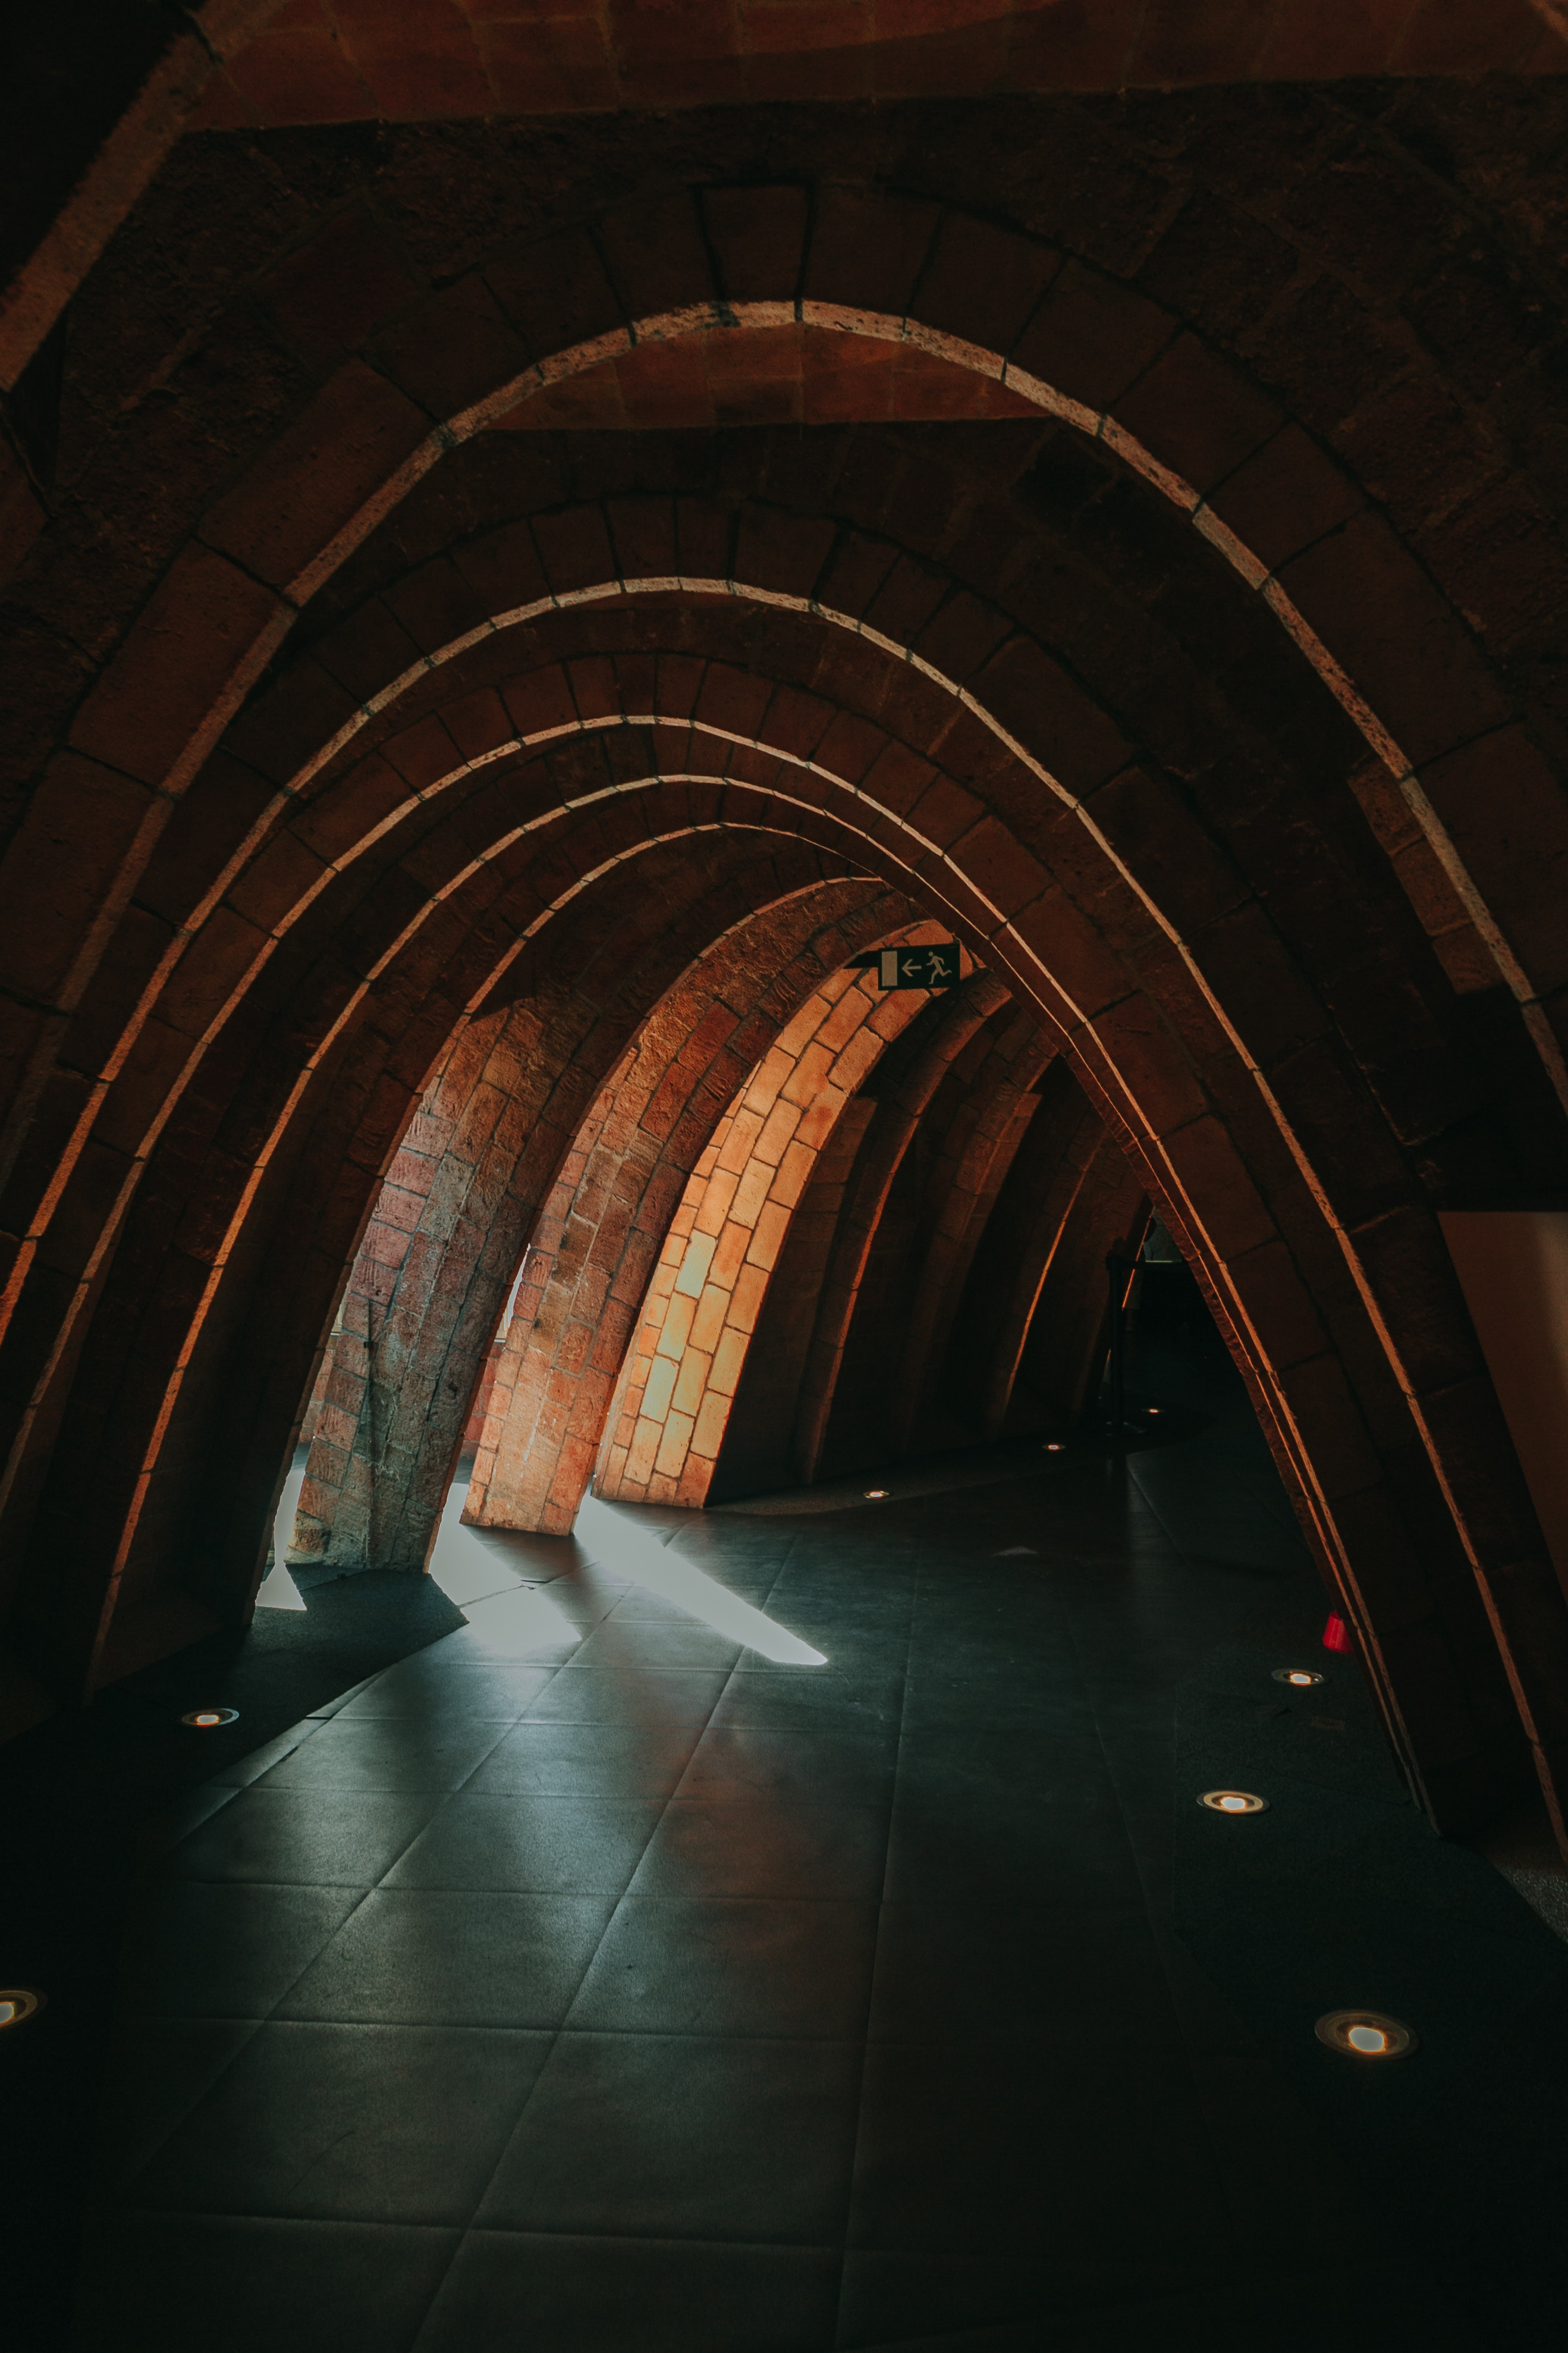 Brown multi-arc green-floored tunnel photo